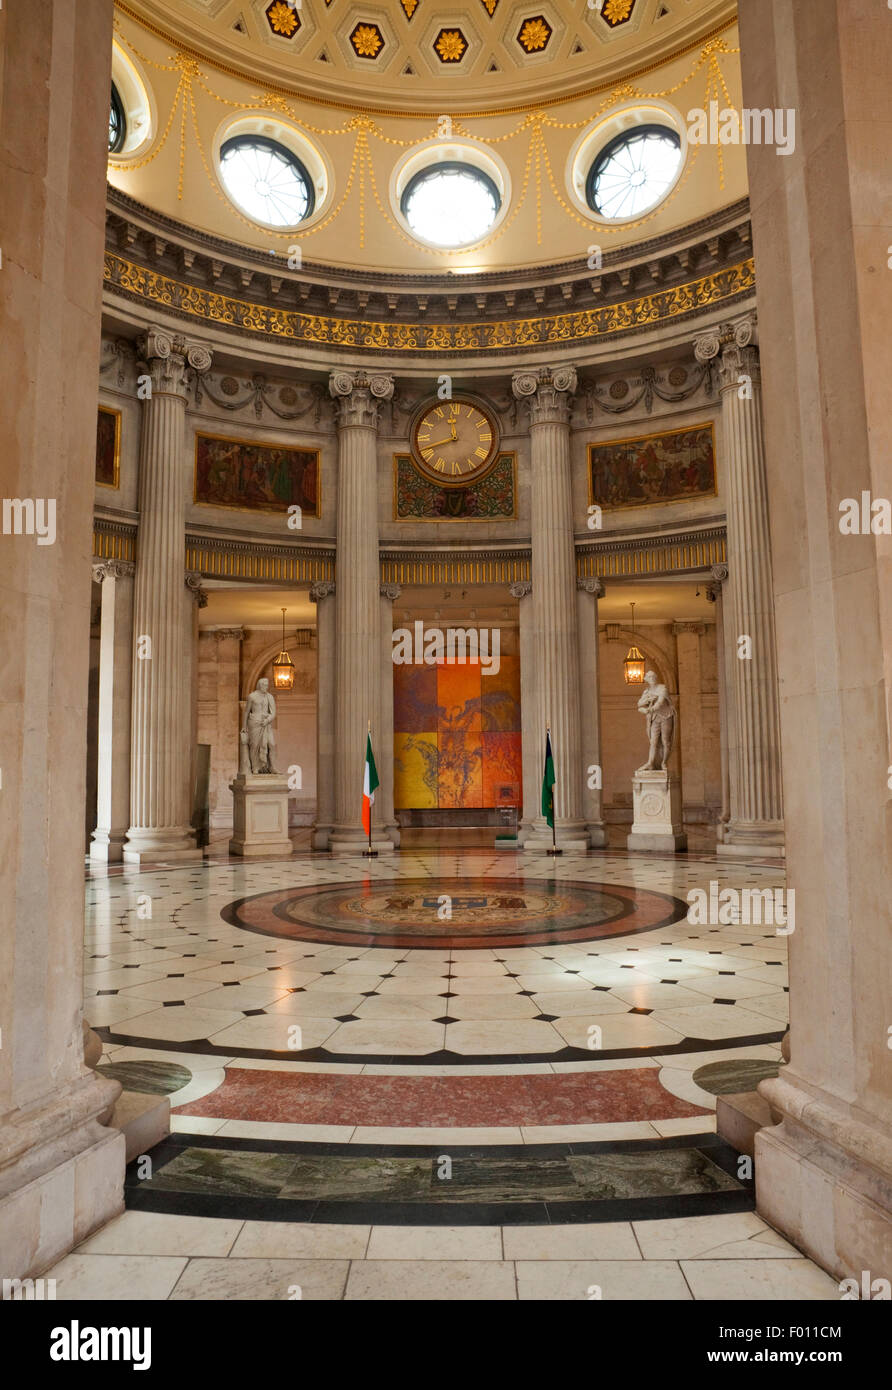 Entrance Hall or Rotunda in City Hall, Opened 1779,  Dame Street, Dublin City, Ireland - Stock Image